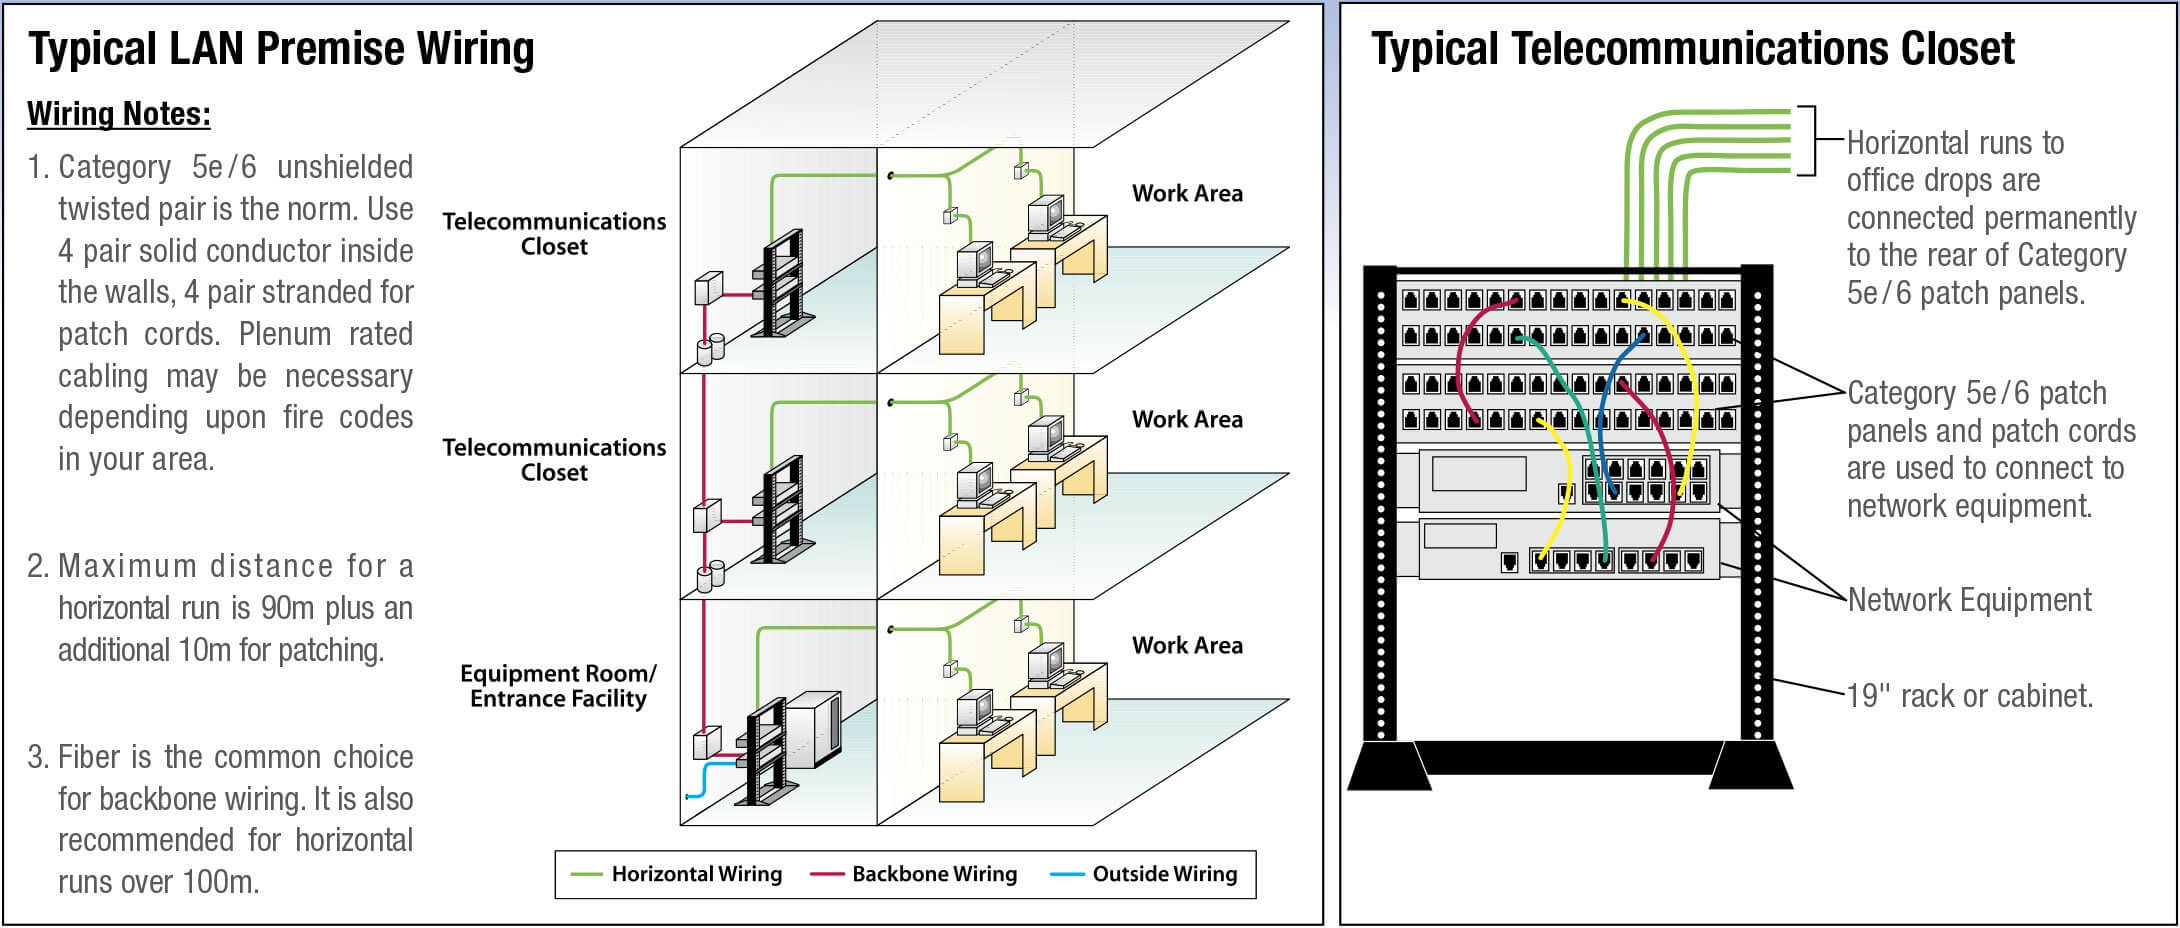 Tele  Modular Premise Wiring Tutorial also Tele  Modular Premise Wiring Tutorial moreover  further Patch Panel in addition Cabling Straight. on cat 6 cable wiring diagram